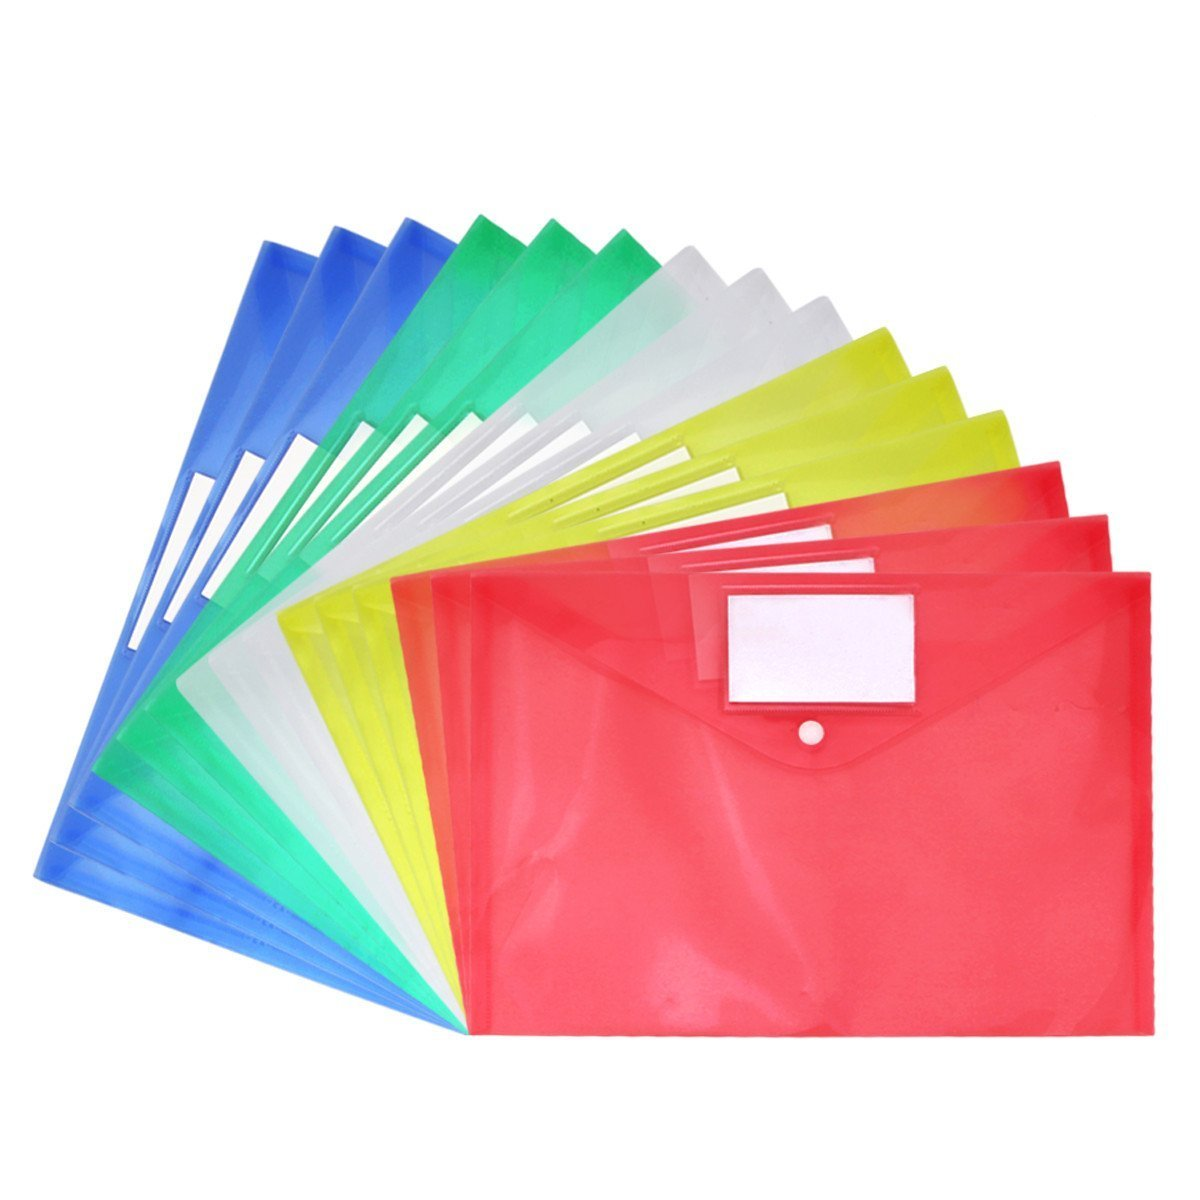 Clear Document Folder A4 Size with Snap Button and Tag Pocket,15 Pcs, Assorted Color,Blue Red Green Yellow White Waterproof Transparent File Envelope